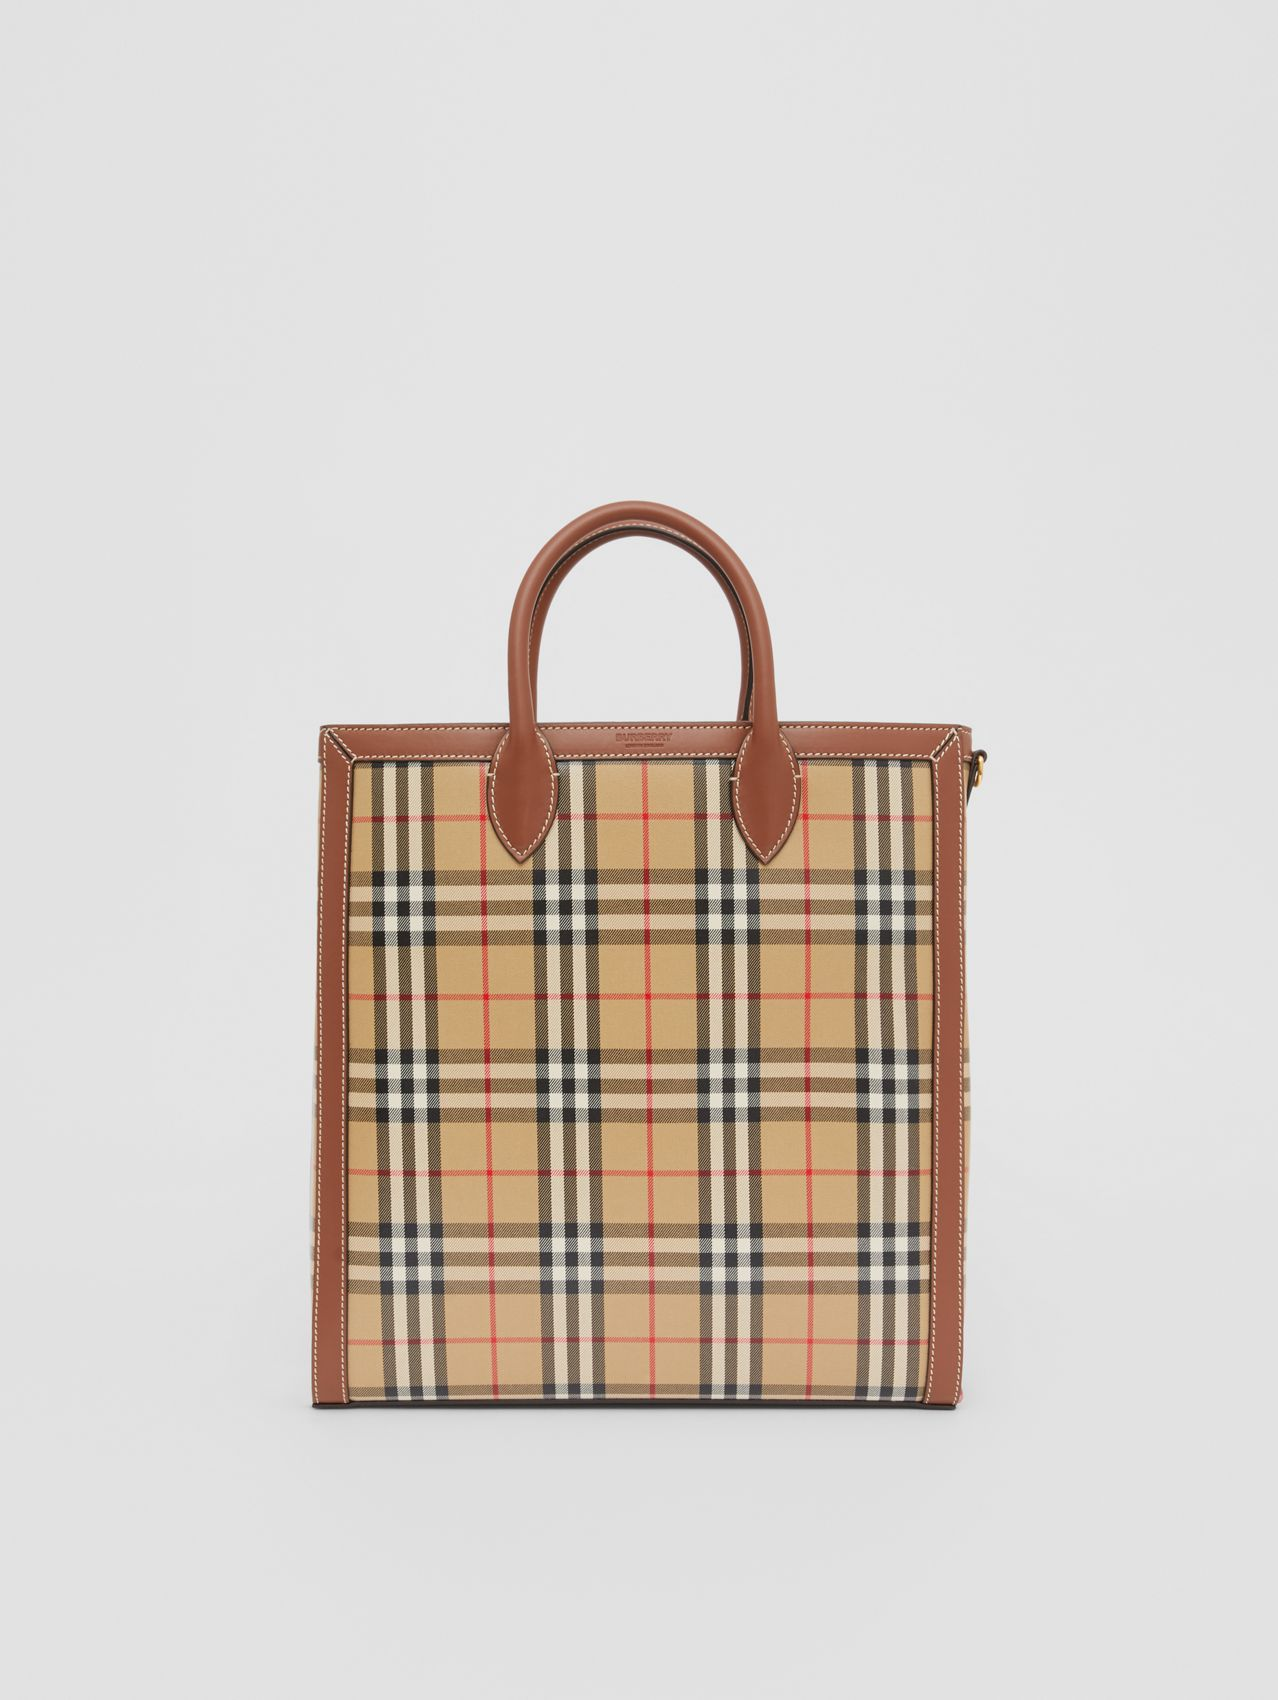 Medium Vintage Check Coated Canvas Tote in Archive Beige